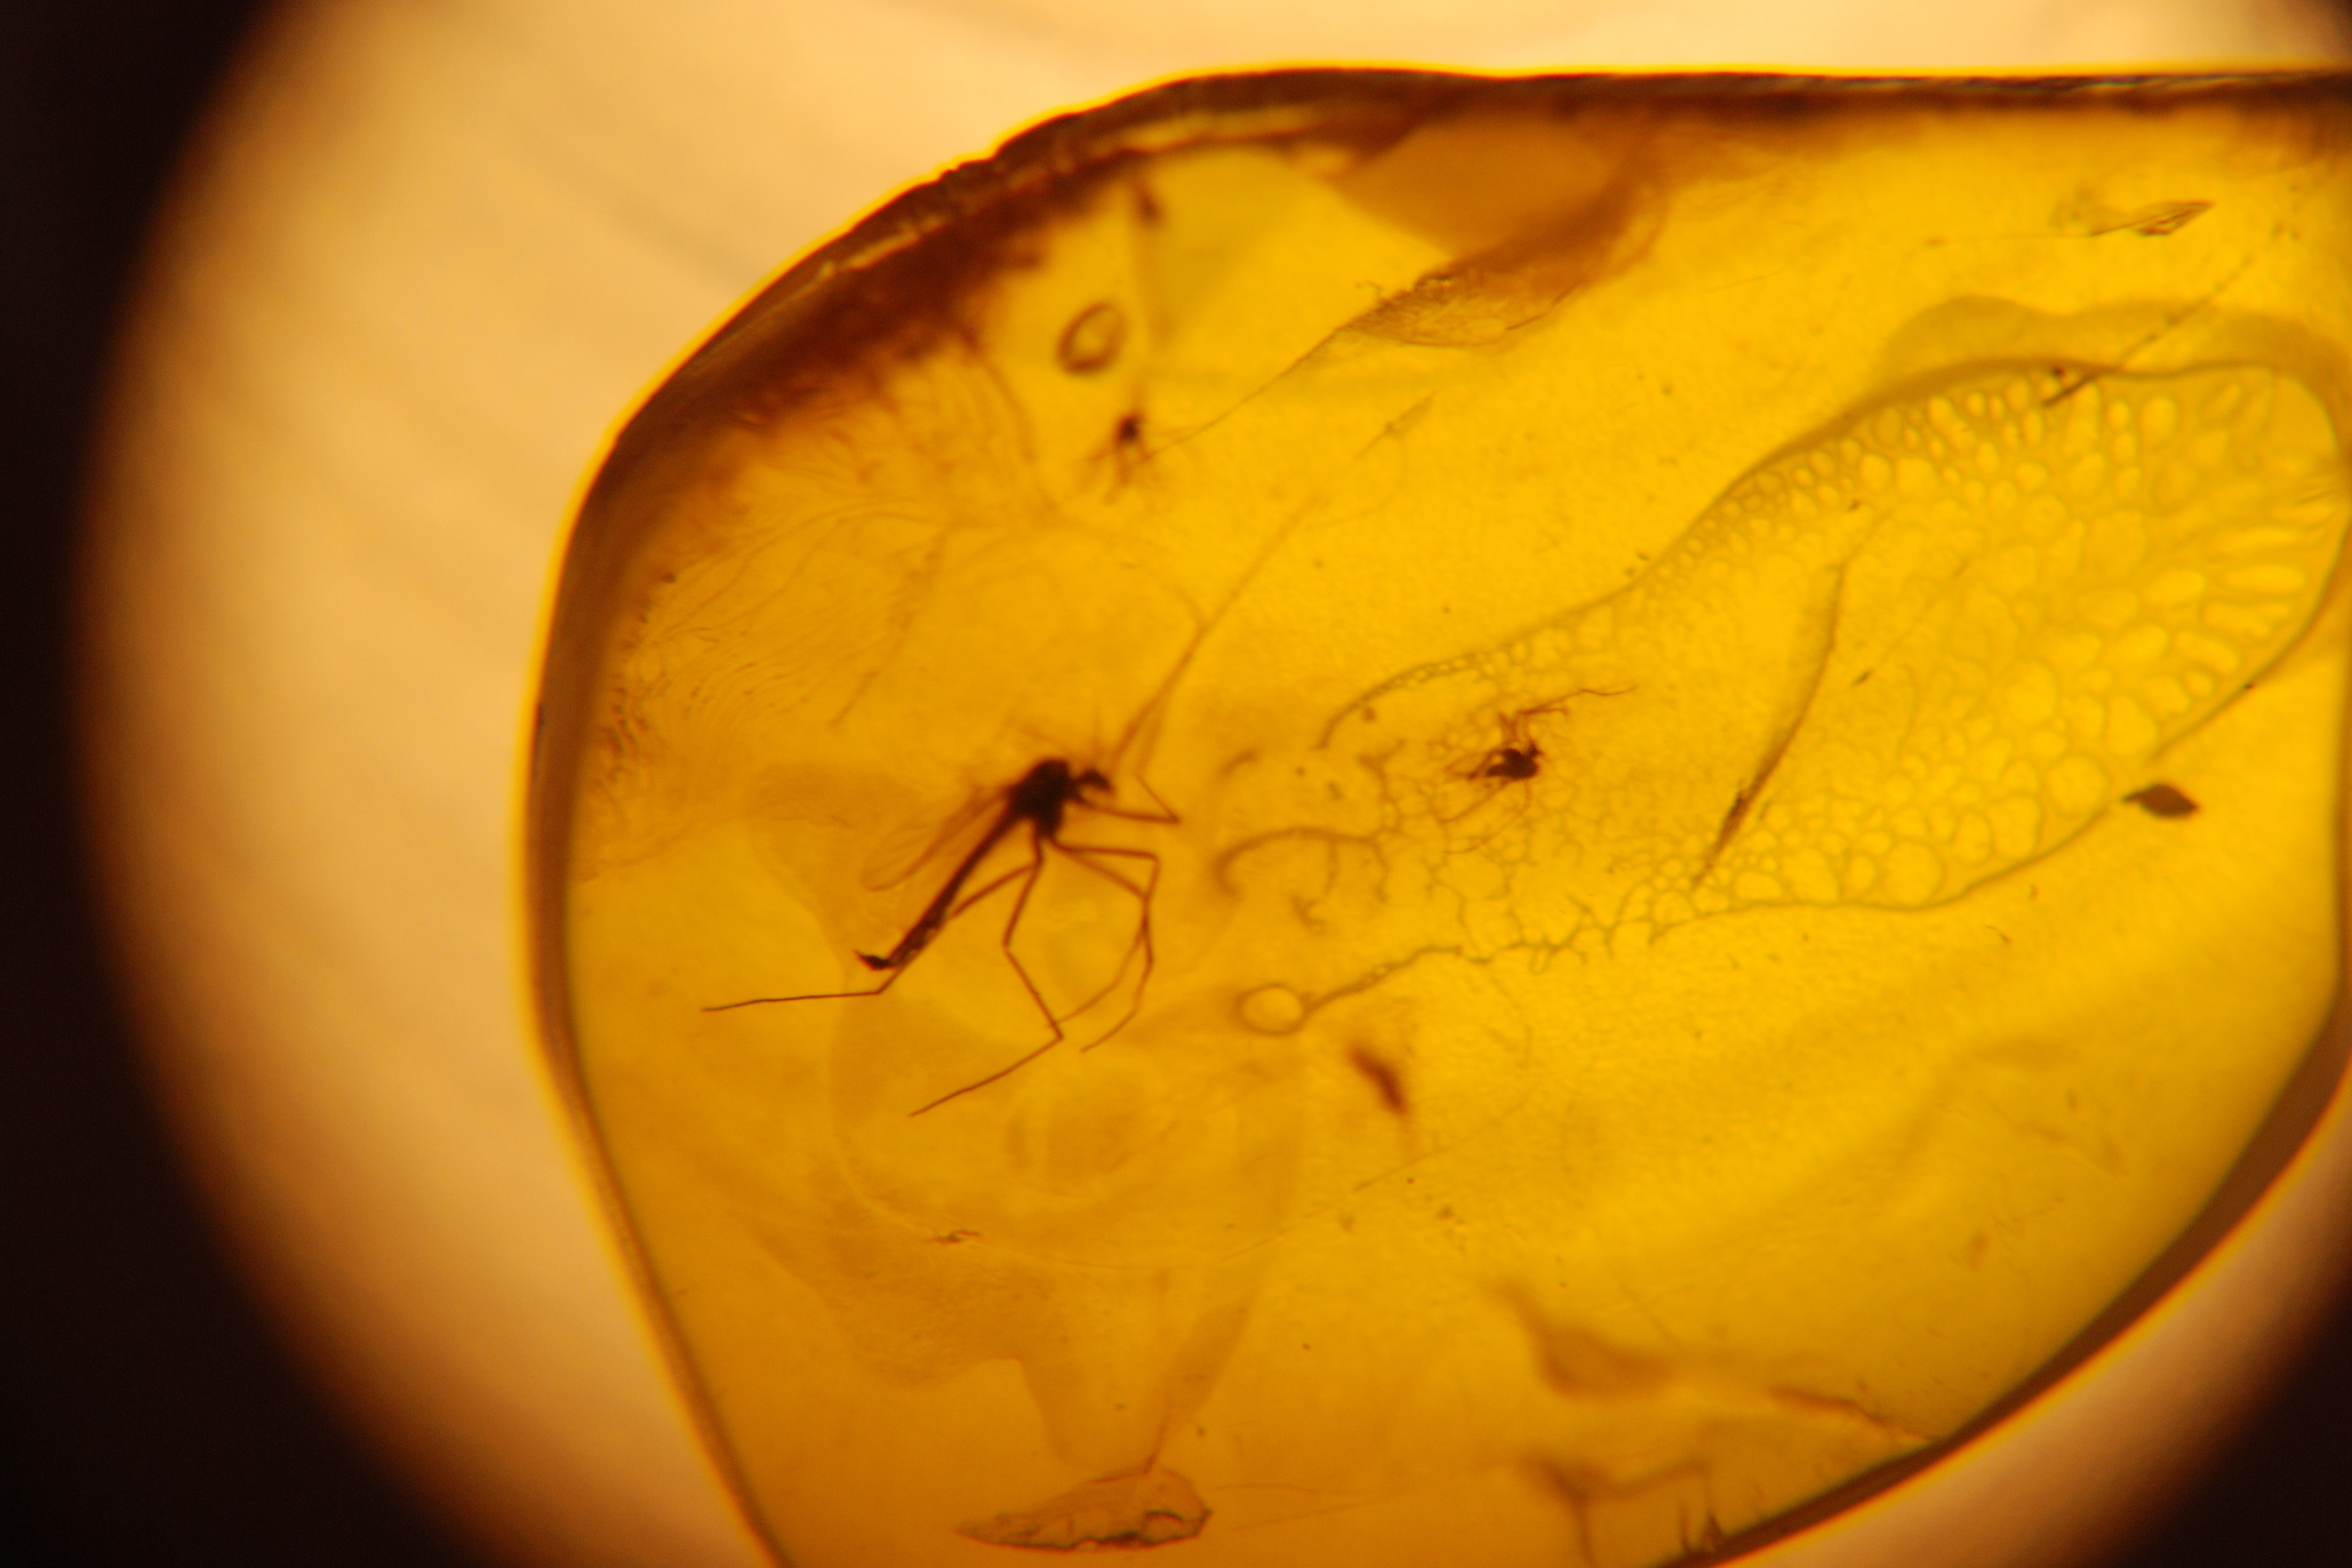 A mosquito fossilized in Amber